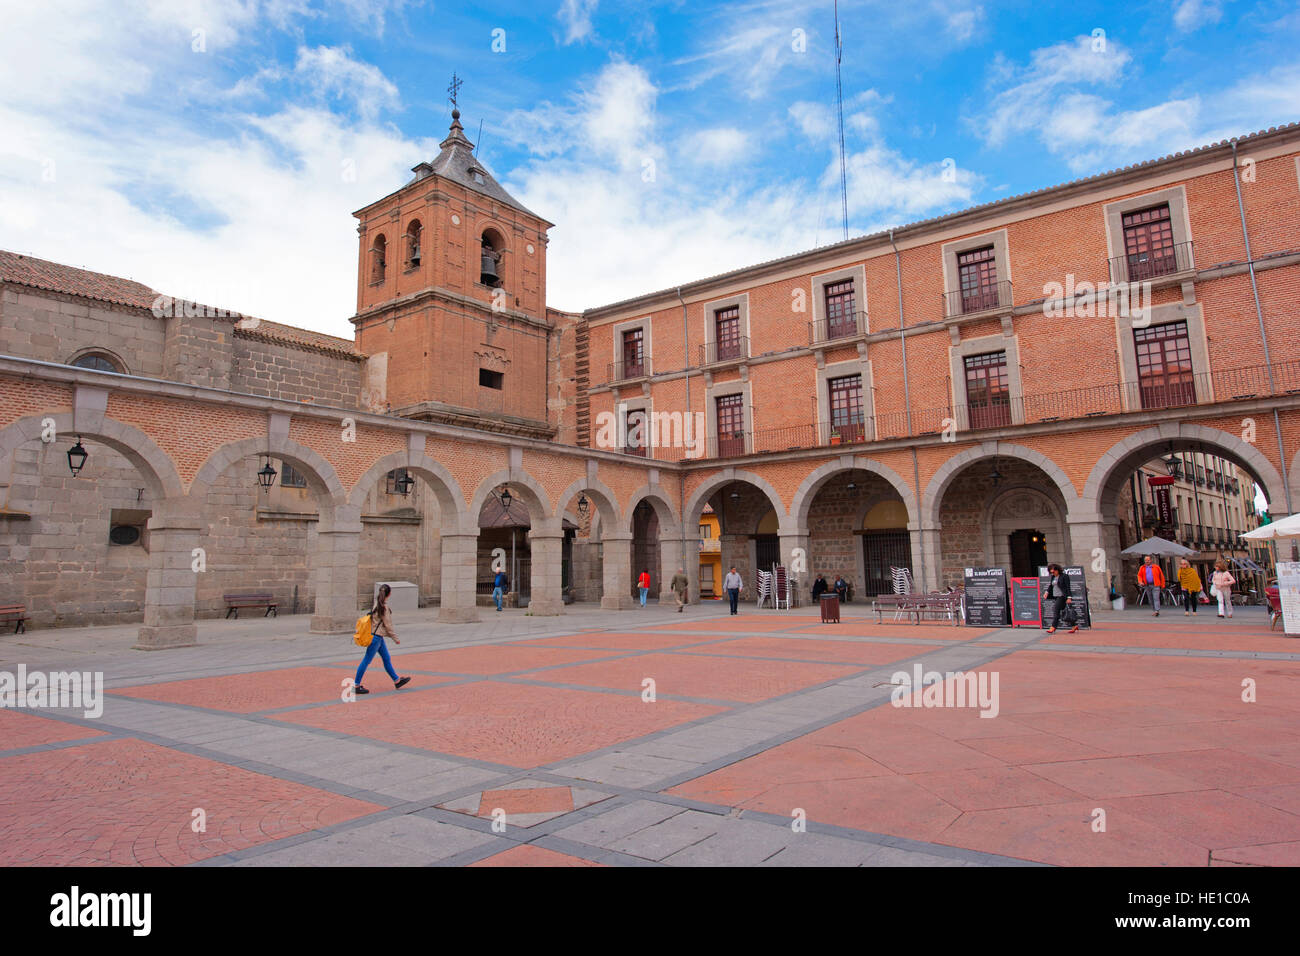 One of the many plazas (squares) in the walled city of Avila, Spain - Stock Image